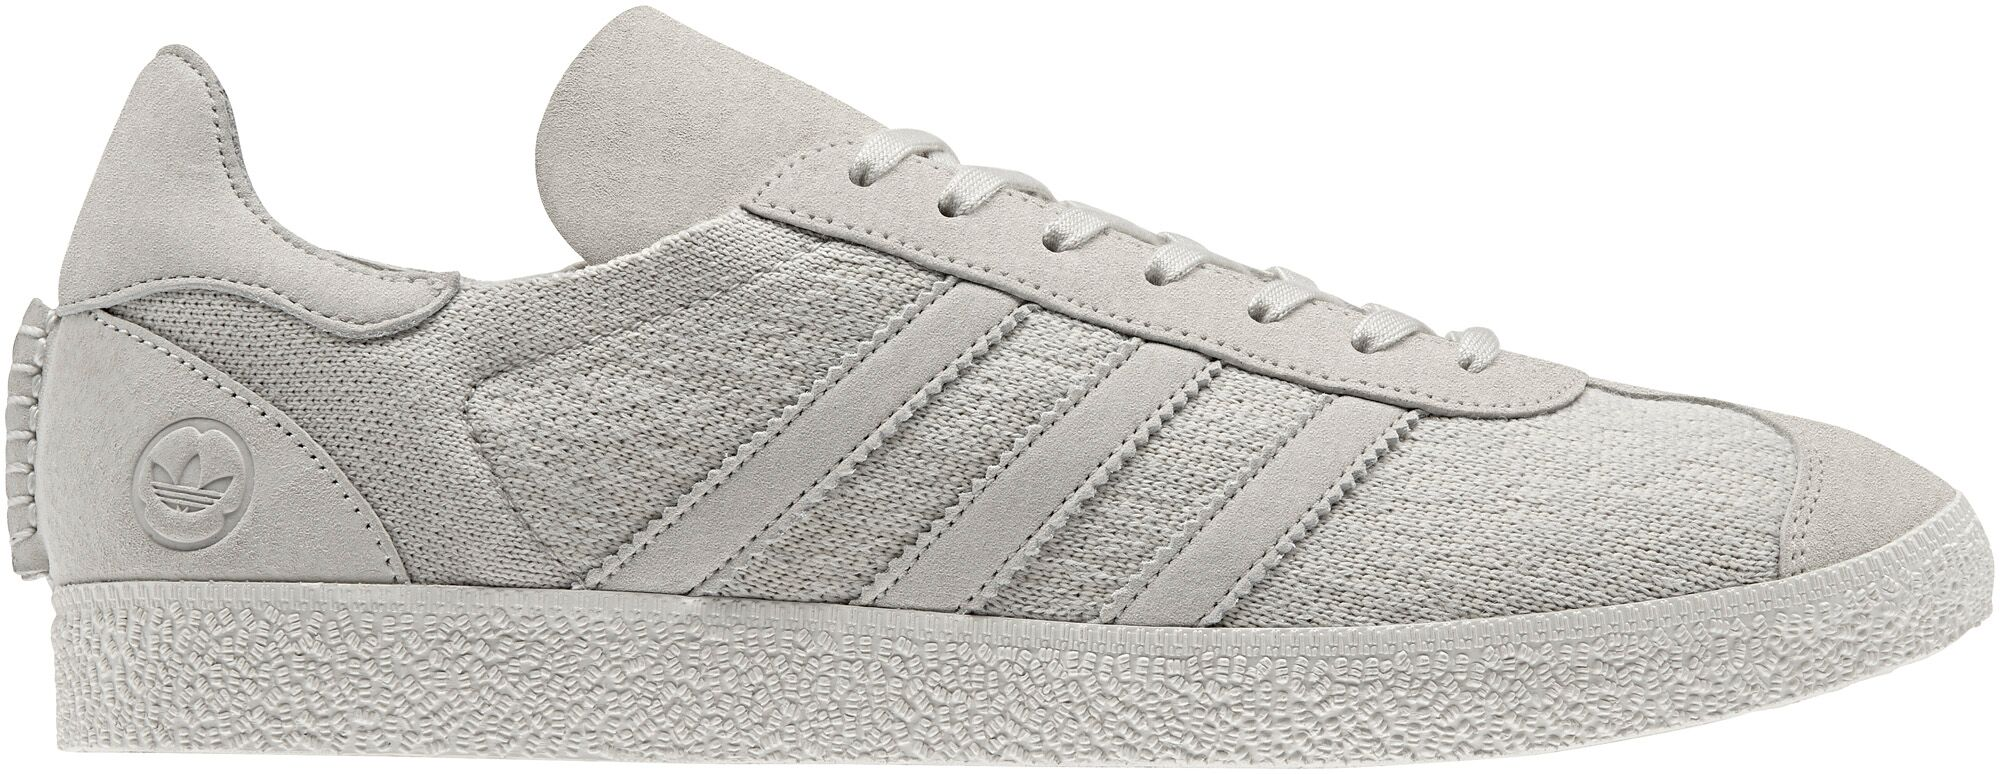 hot sales 96d1b 81c6c Wings + Horns x adidas Gazelle 85 White Side